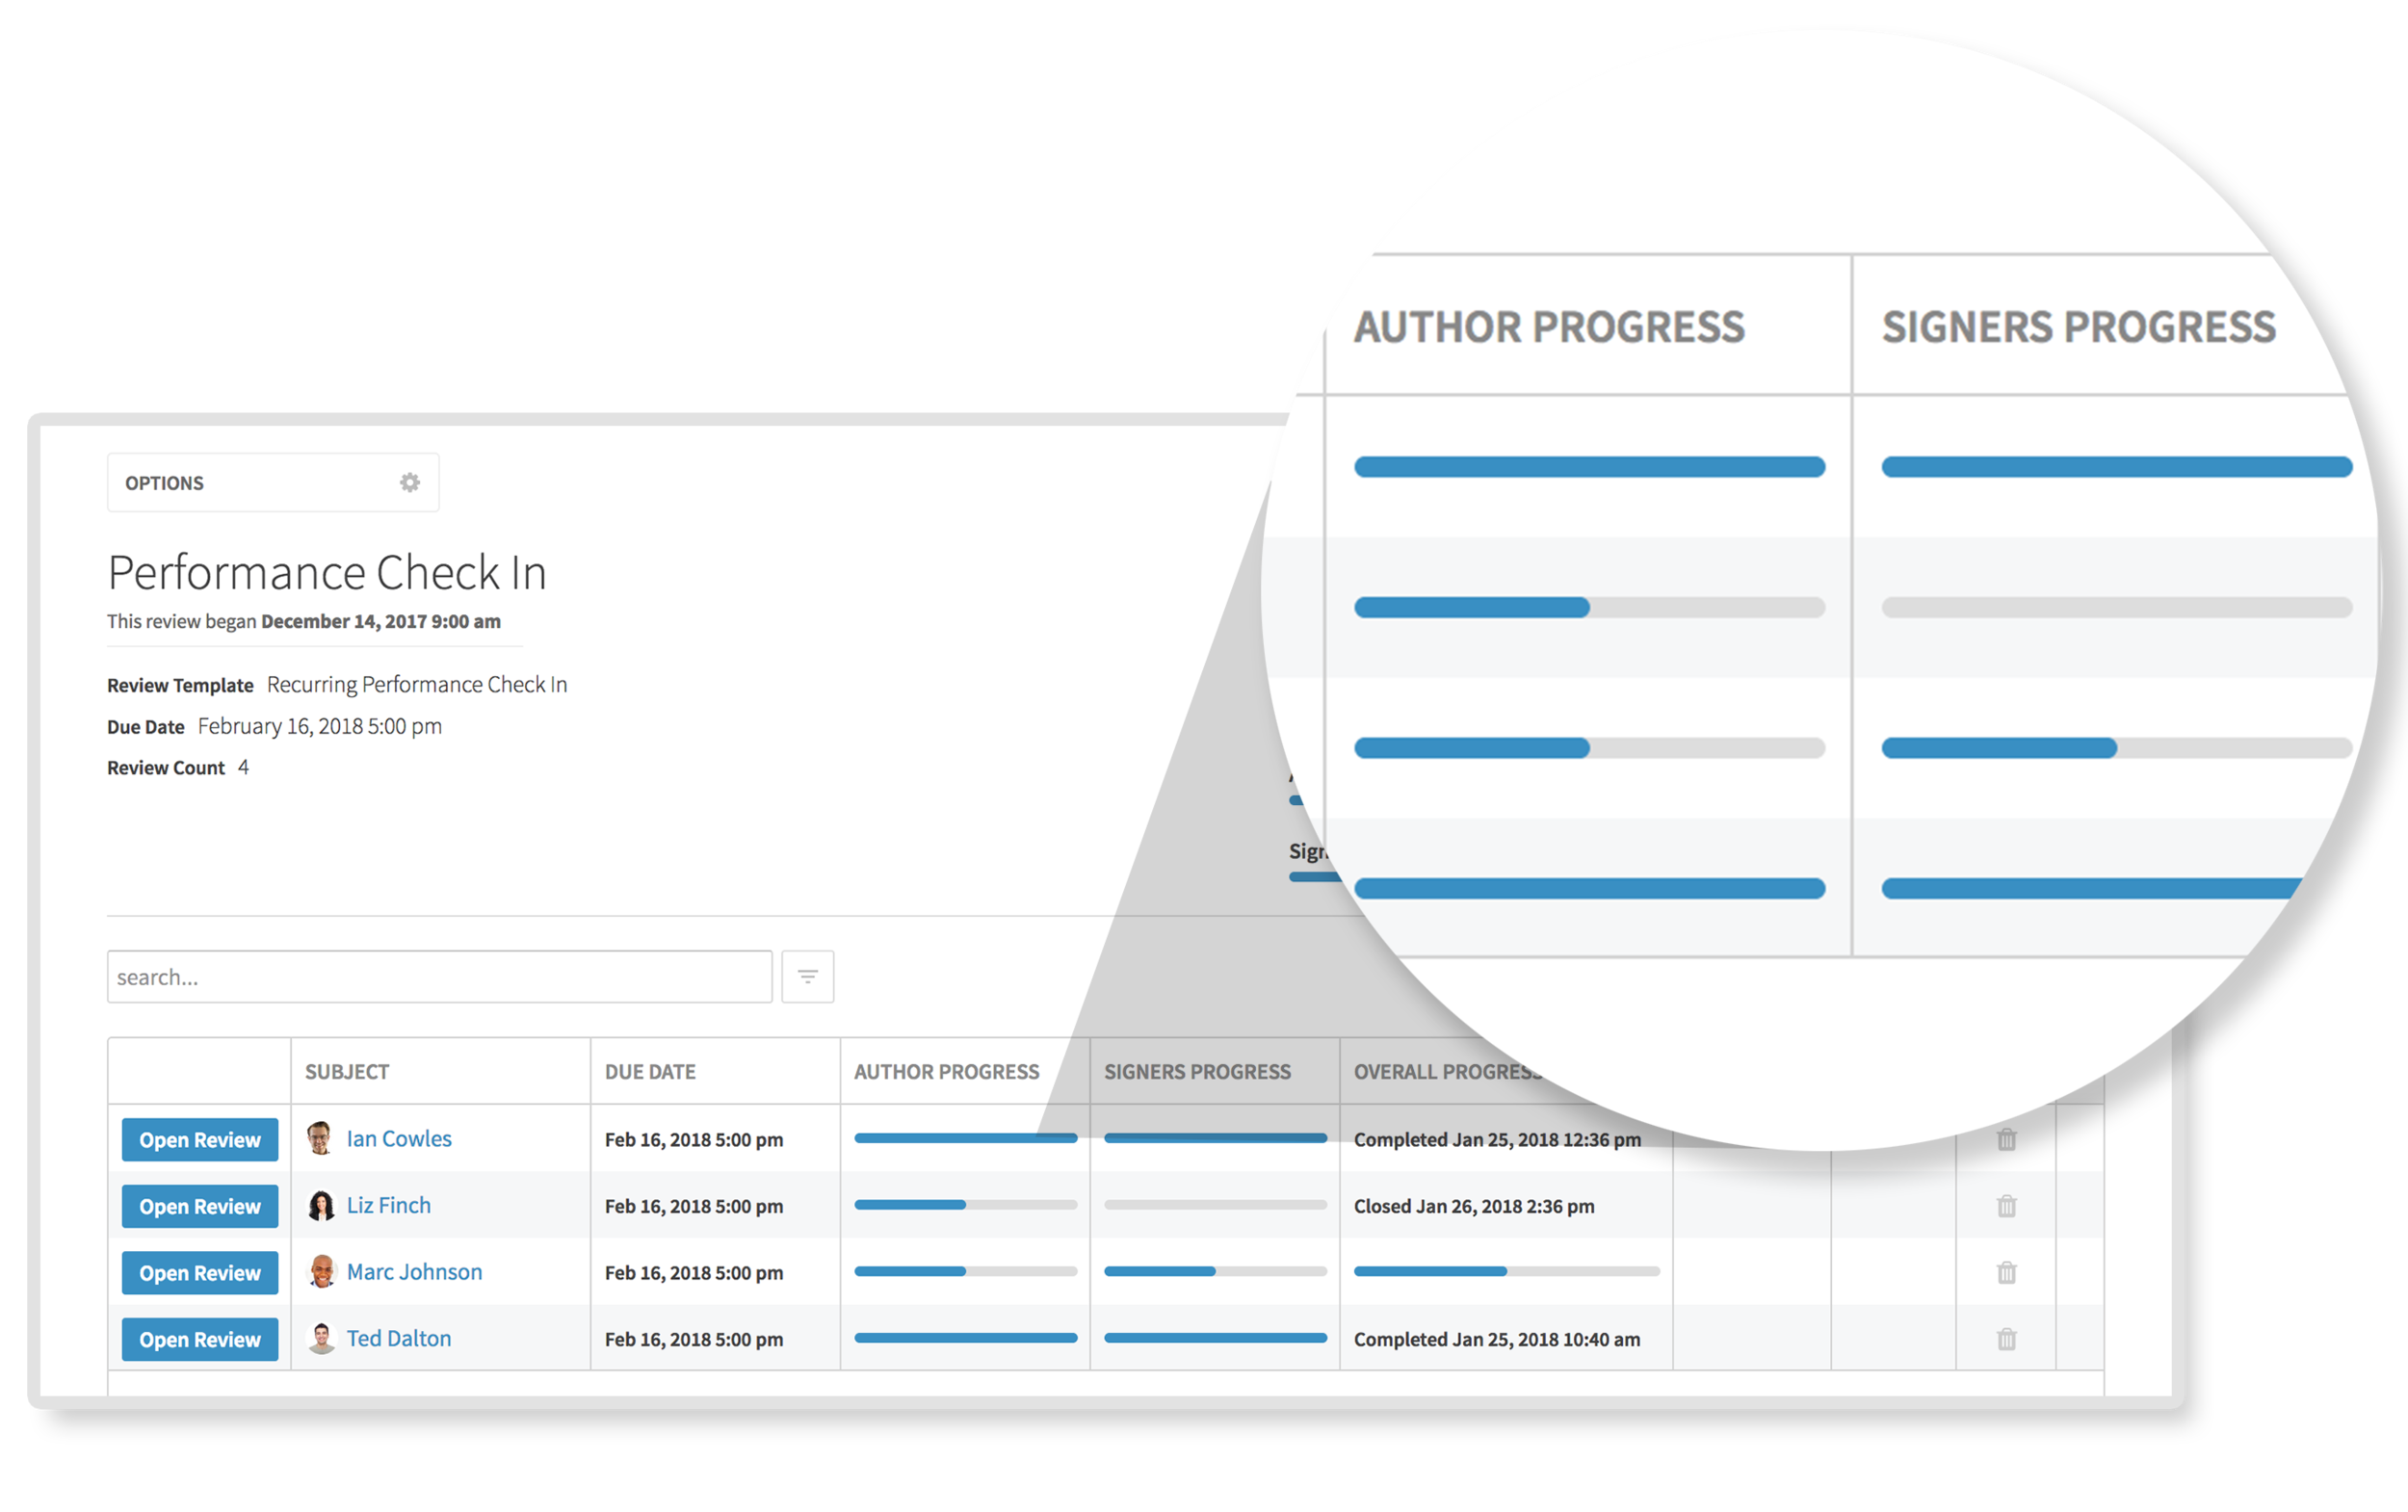 Easily Deploy & Track Progress - Launch review cycles at the time of your choosing and easily monitor who has done what to ensure timely completion of those important reviews.Access a live progress dashboard giving managers and HR staff the information needed to ensure high participation rates.